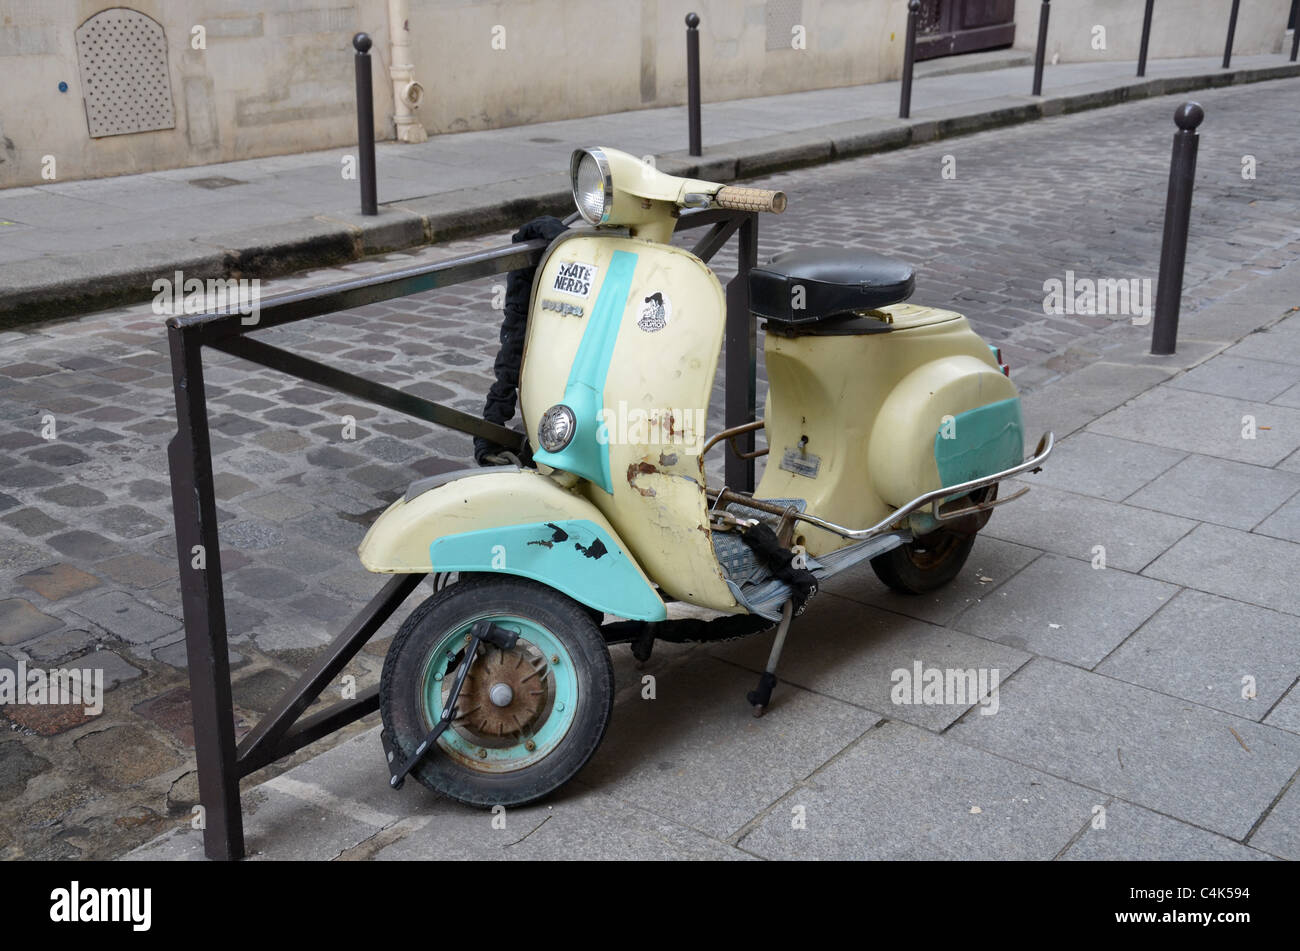 A rather battered Vespa scooter secured to a rail in the Rue Tournefort in the Latin Quarter, Paris, France. - Stock Image